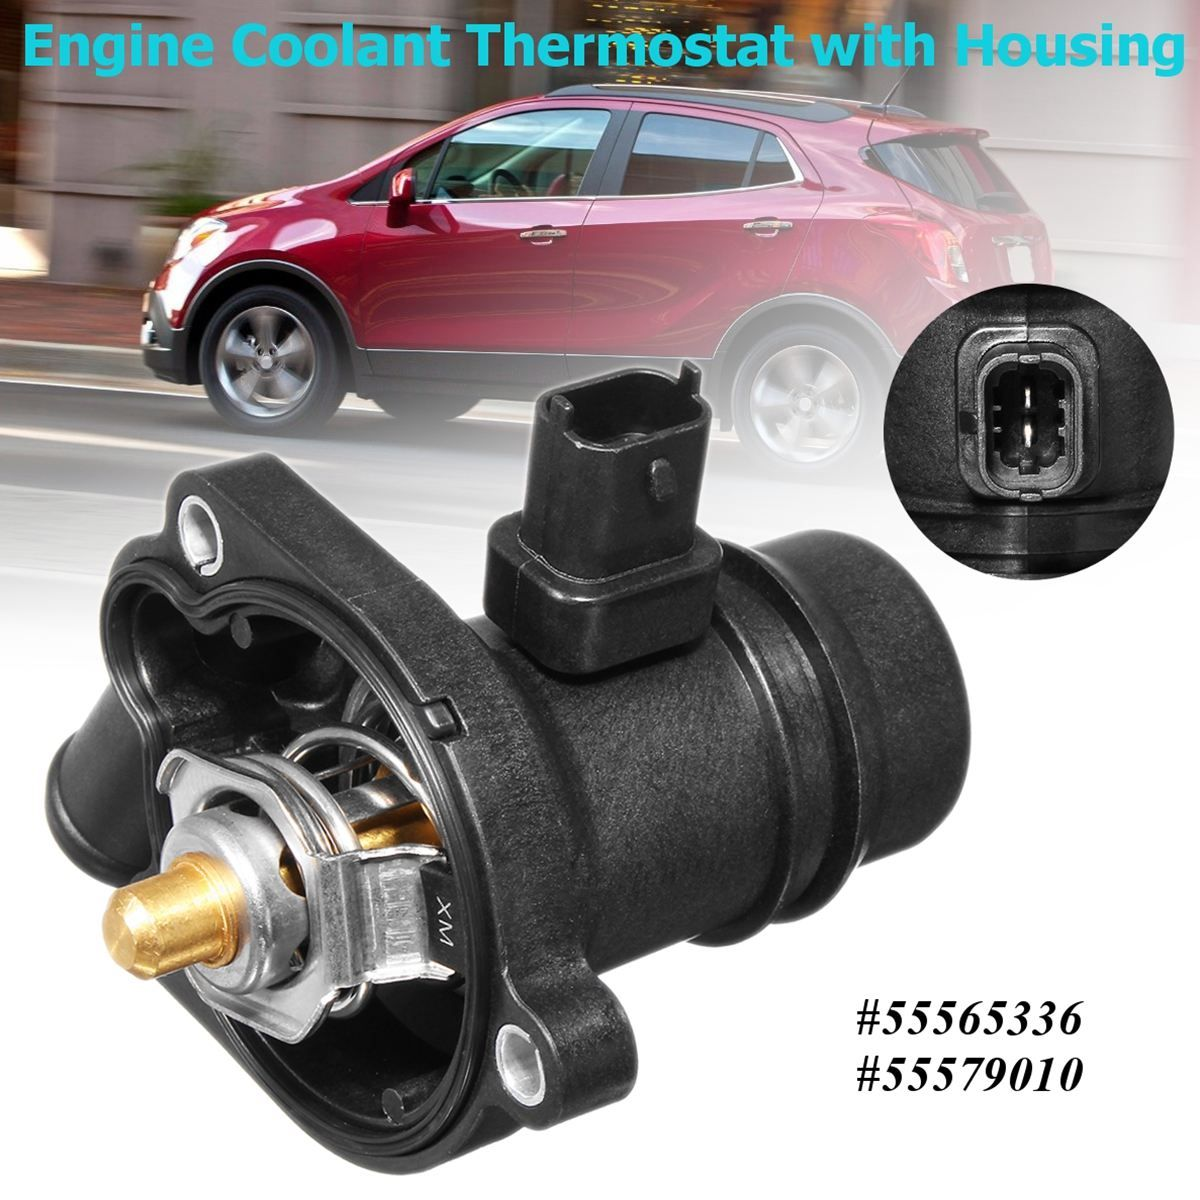 Engine Coolant Thermostat With Housing Replacement For Chevrolet/Buick/Cruze/Sonic/Encore 2011 2012 2013 2014 2015 2016